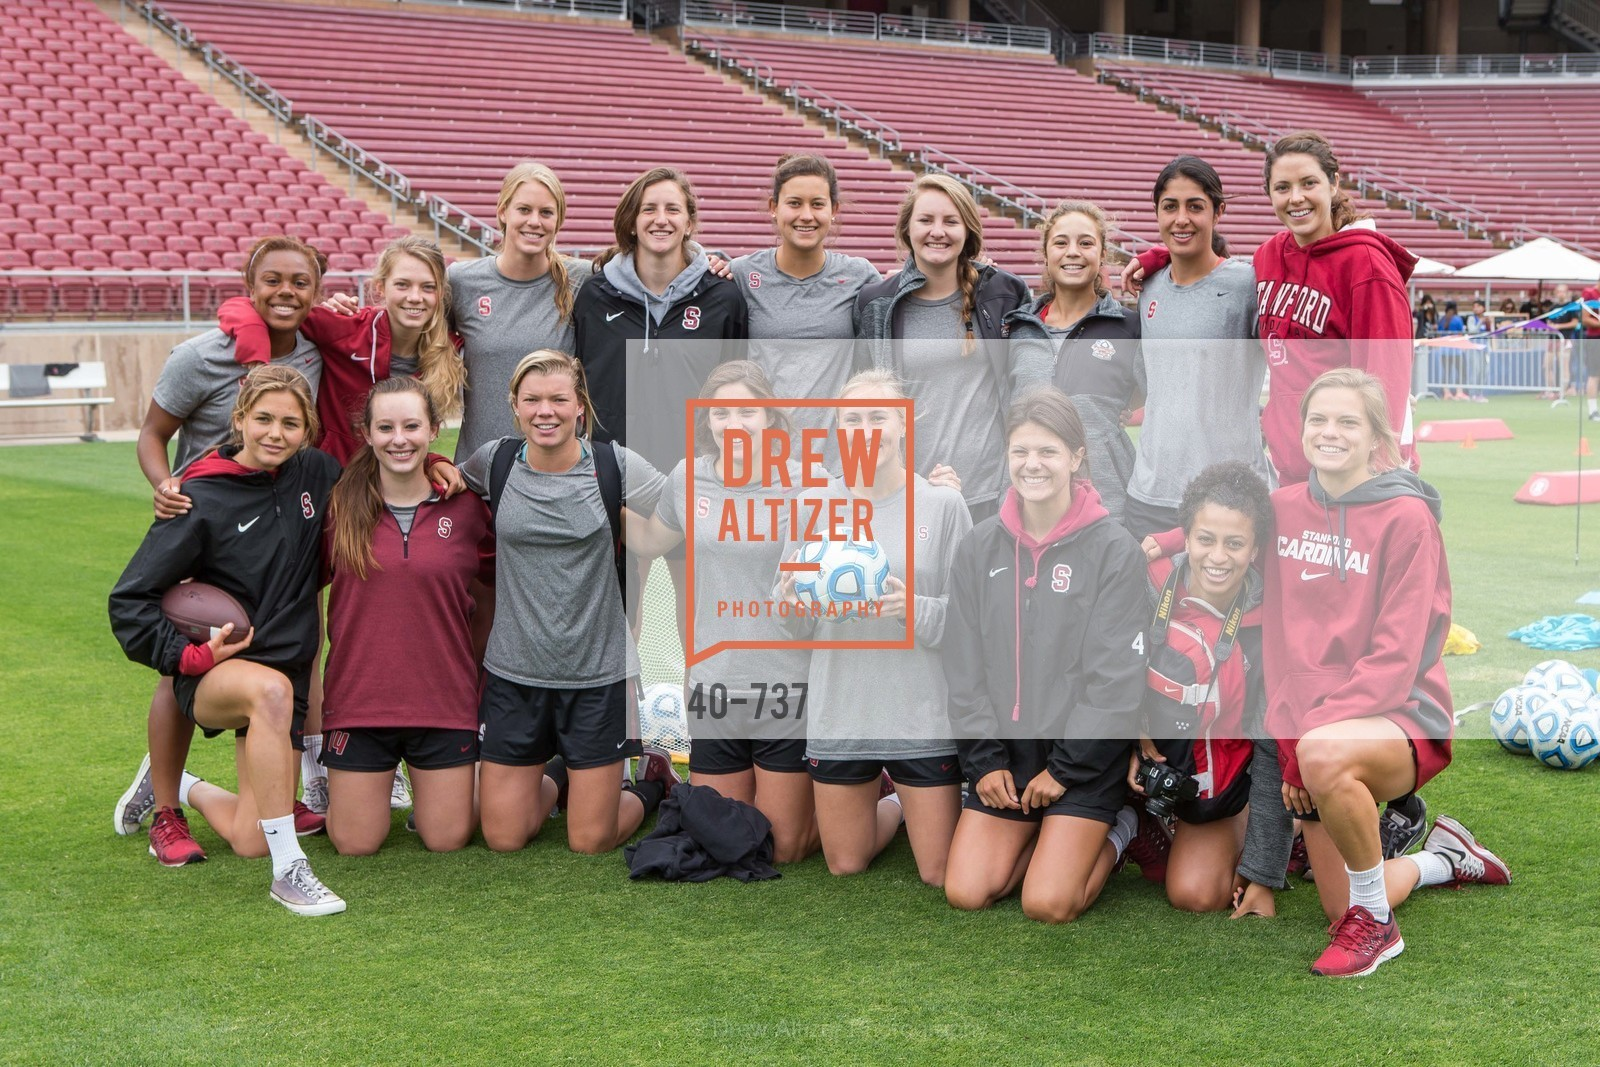 Stanford Women's Soccer Team, Children's Champions, US, May 17th, 2015,Drew Altizer, Drew Altizer Photography, full-service agency, private events, San Francisco photographer, photographer california